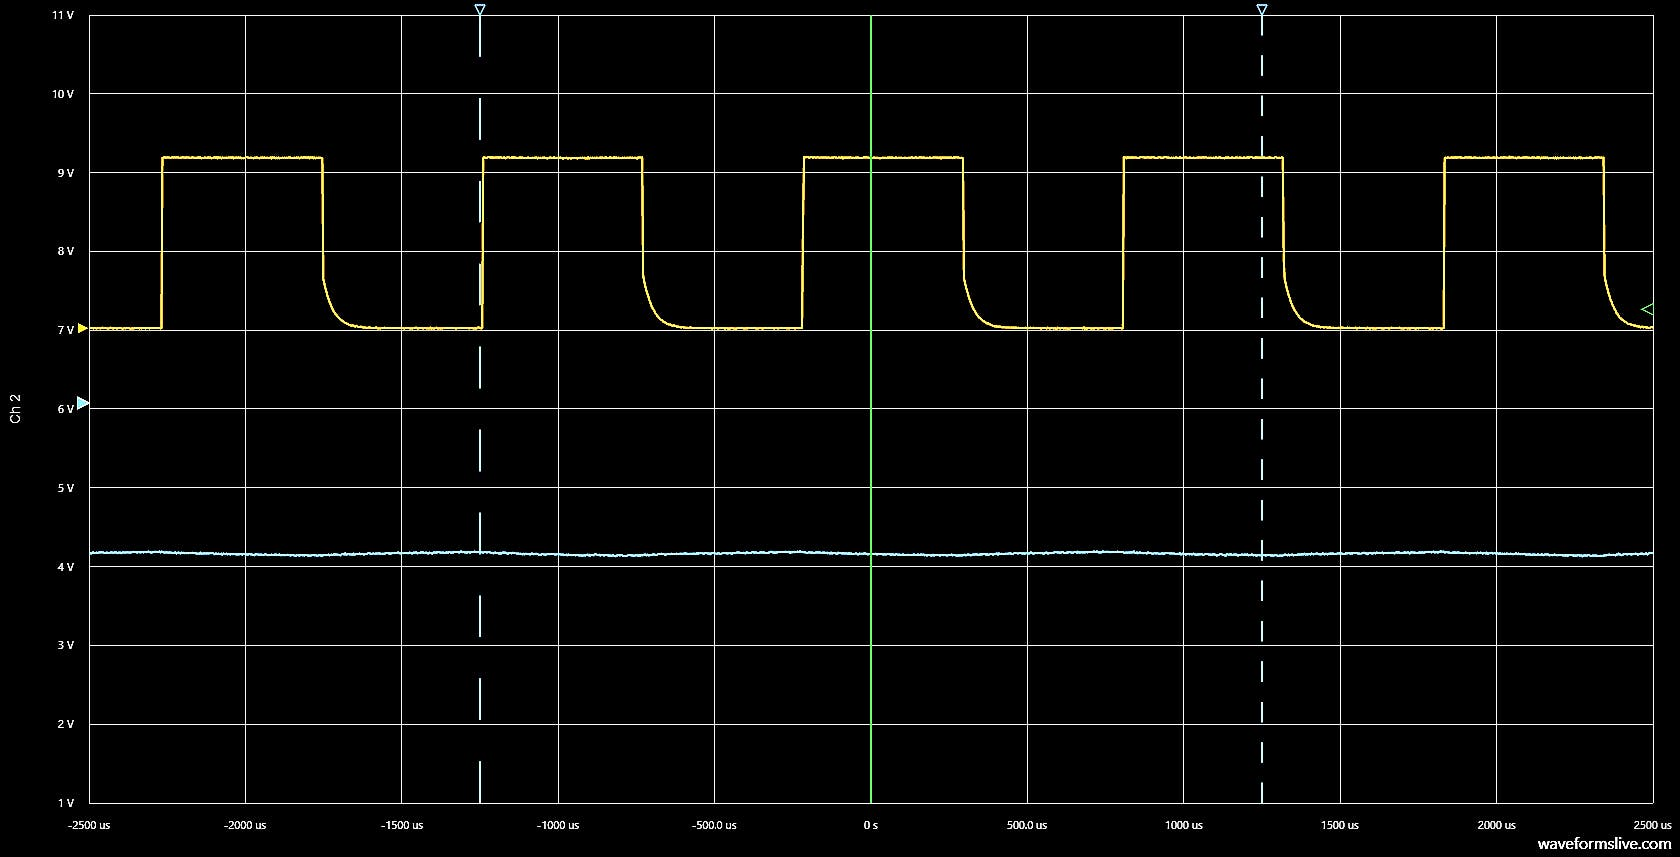 At a 50% duty cycle the LDR resistance was calculated to be 55kΩ.